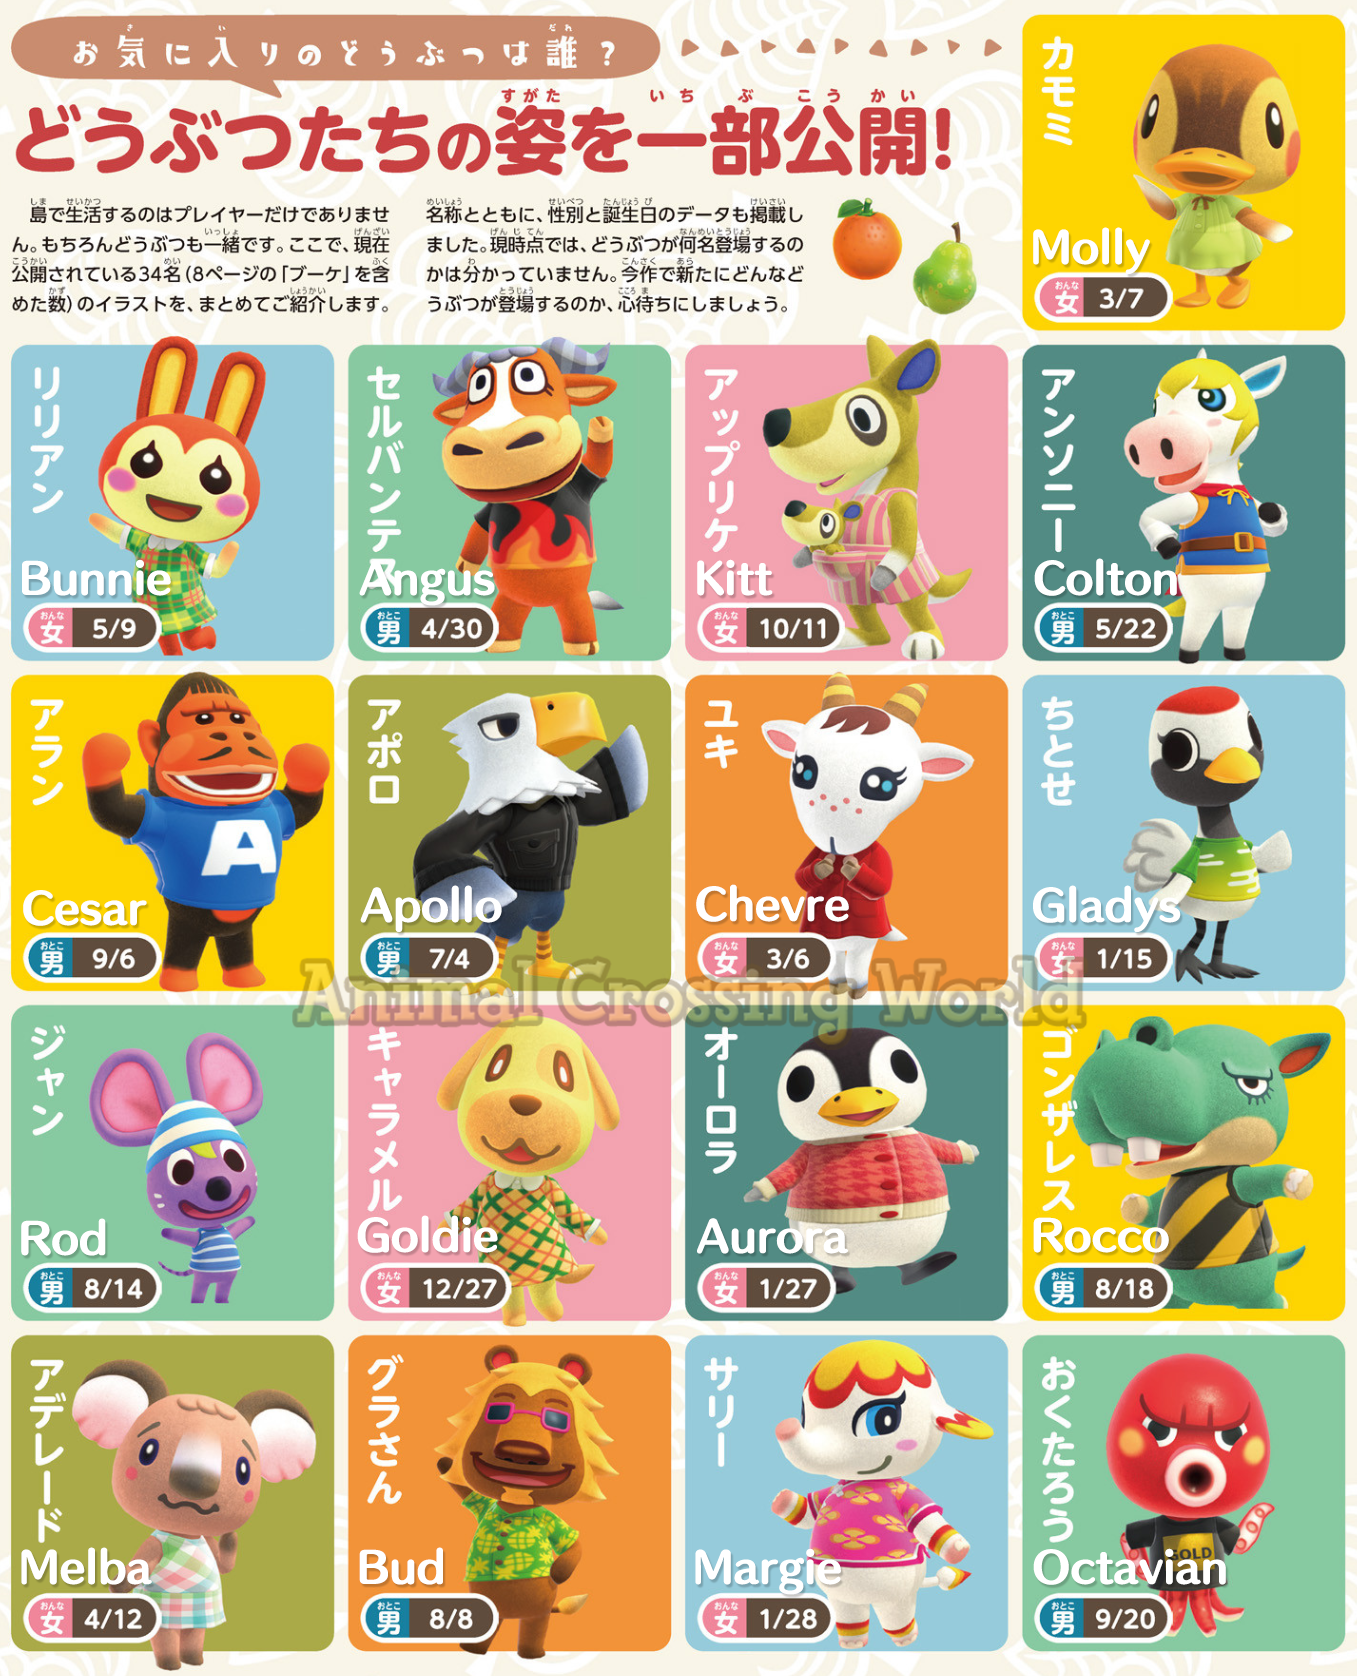 New Animal Crossing New Horizons Villager And Flower Renders In